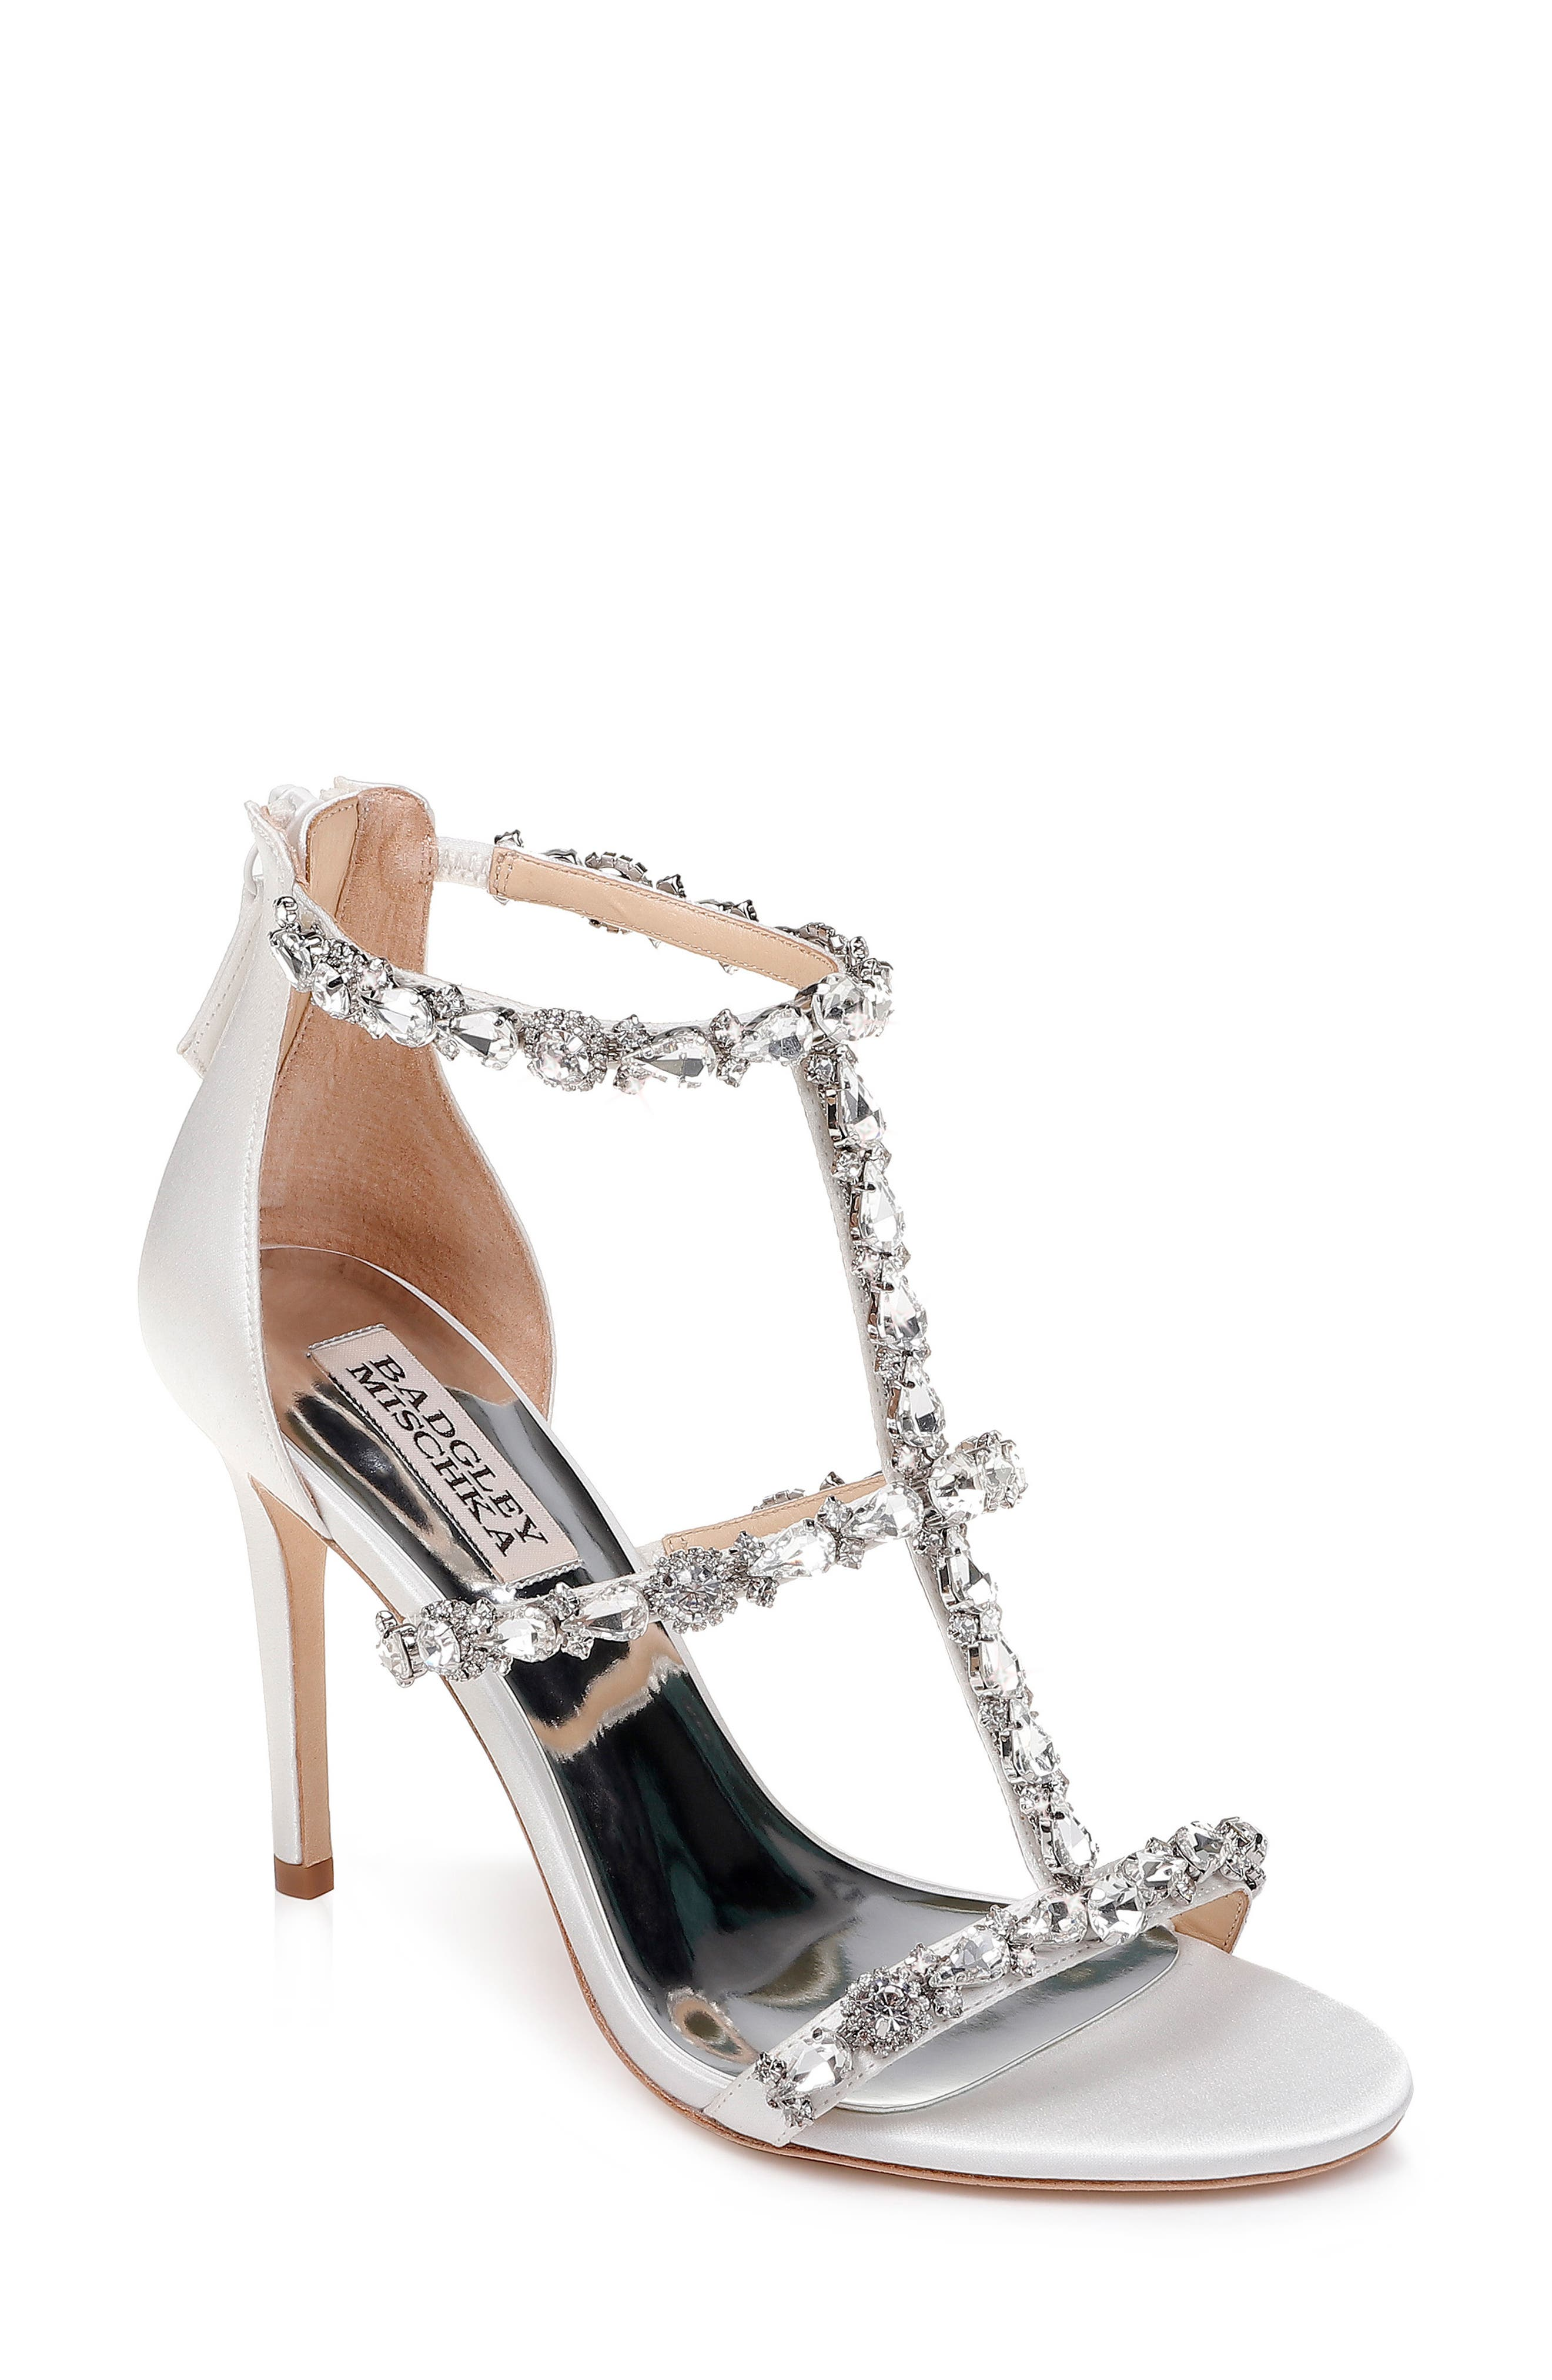 Querida Embellished Sandal,                         Main,                         color, SOFT WHITE SATIN